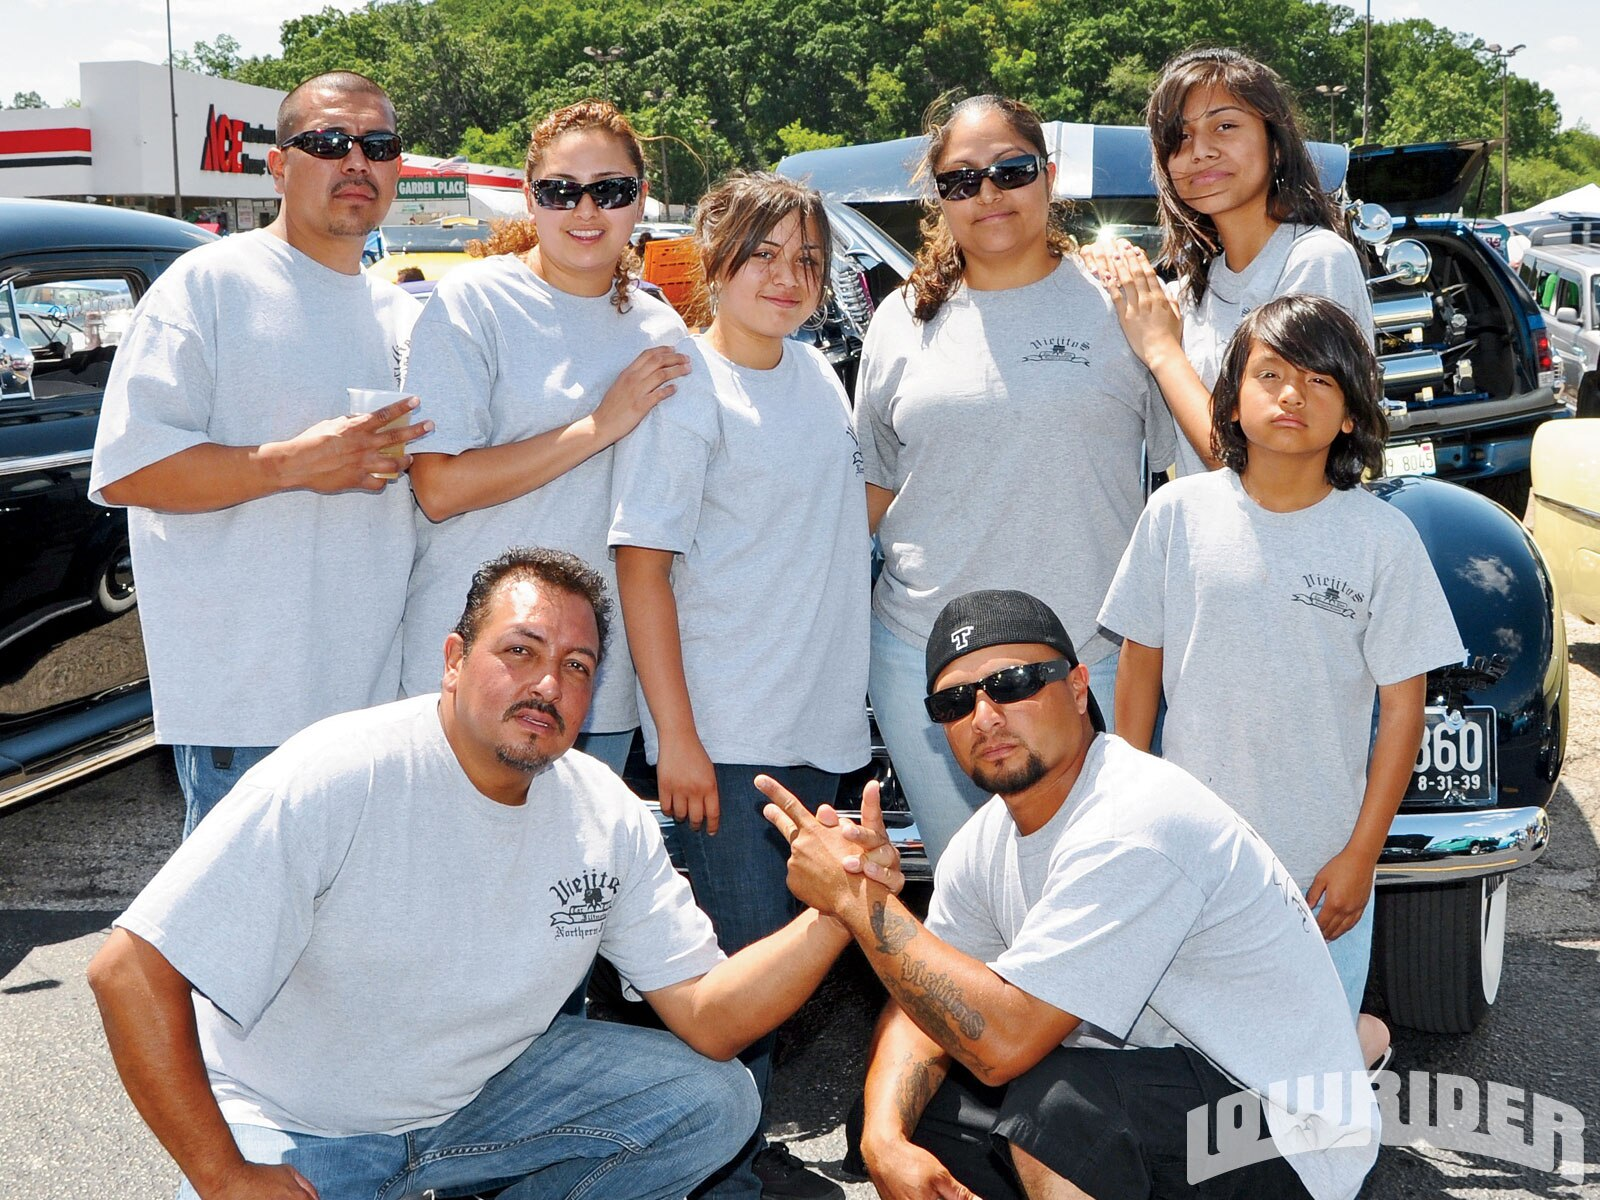 1005_lrmp_01_o-solitos_2nd_annual_car_show-viejitos_members2